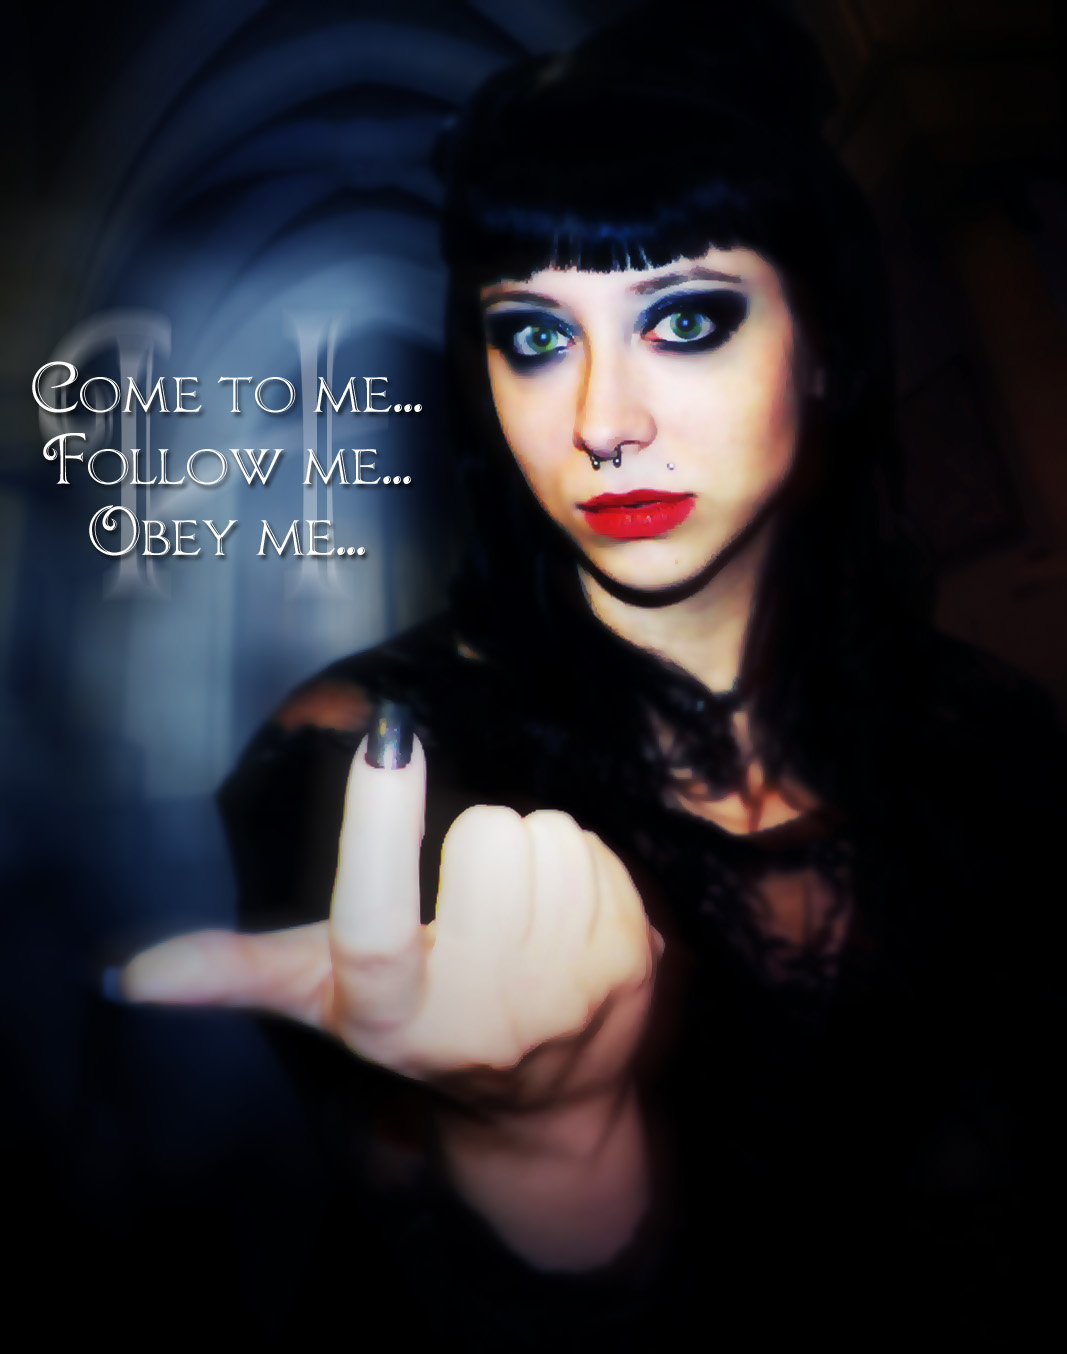 hypnodomme, hypnosis, erotic, hypnotichaylee, hypnotic haylee, erotic hypnosis, femme domme, female domination, miress, fetish mistress, dominatrix, sensual domination, slave, master, submissives